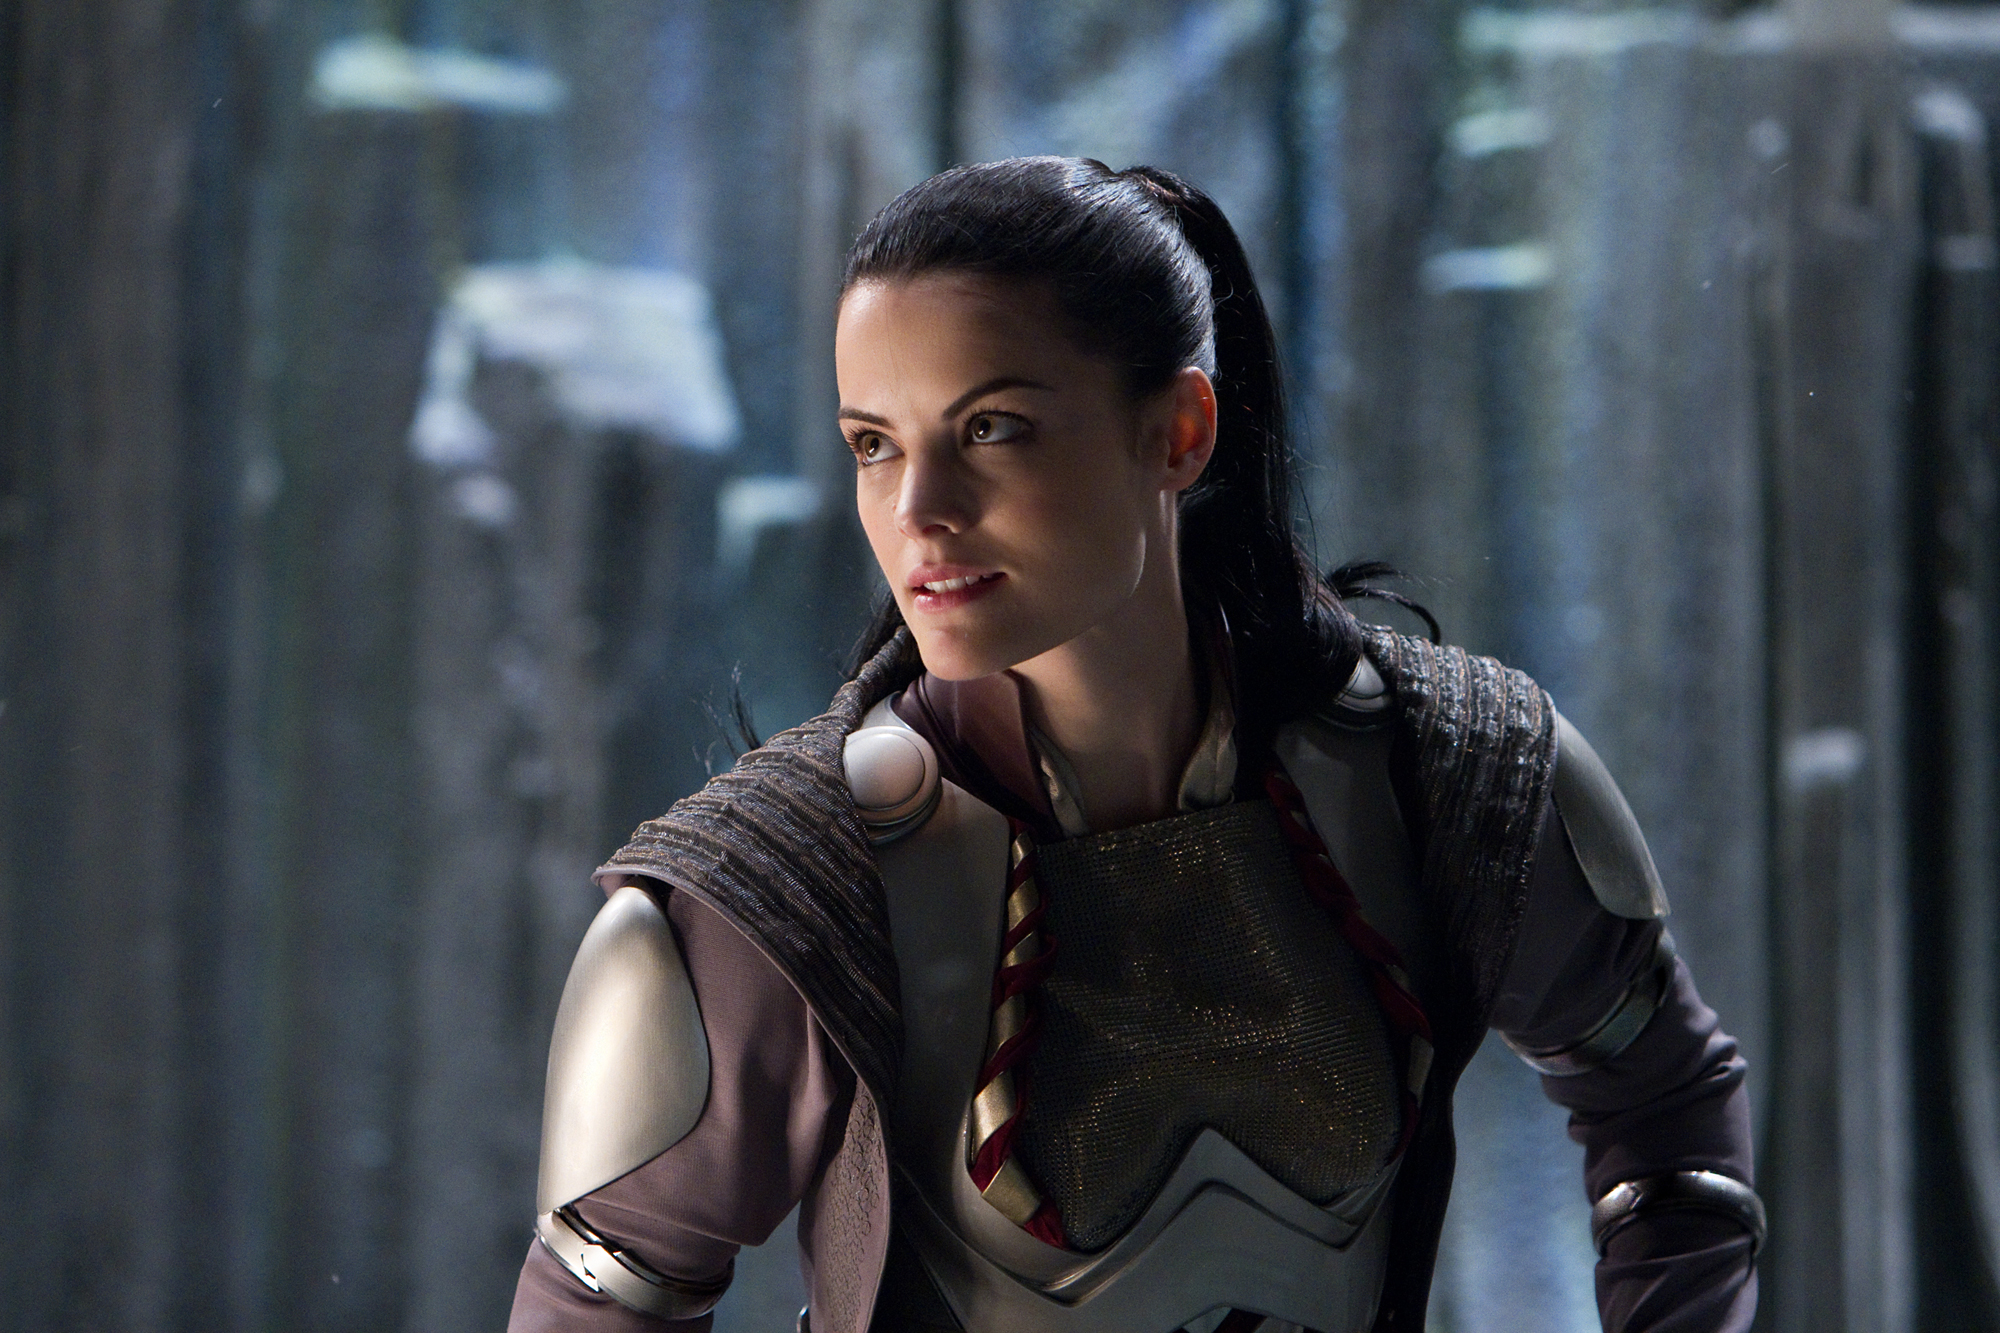 Marvel producer responds to possibility of Lady Sif returning to the MCU